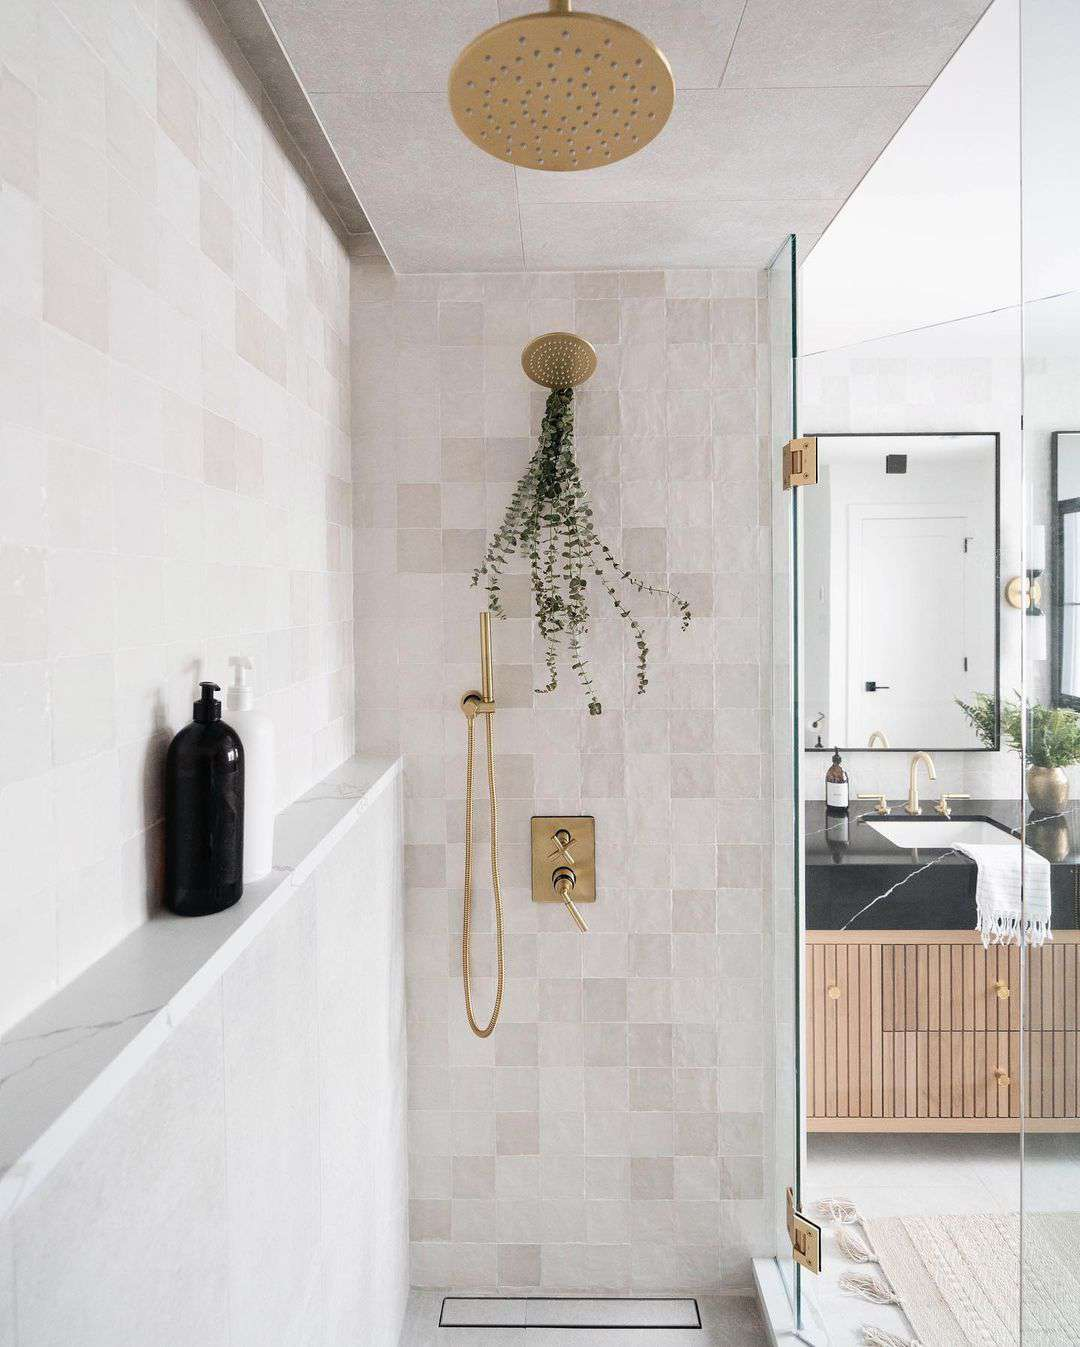 Shower with a glass door and gold faucet